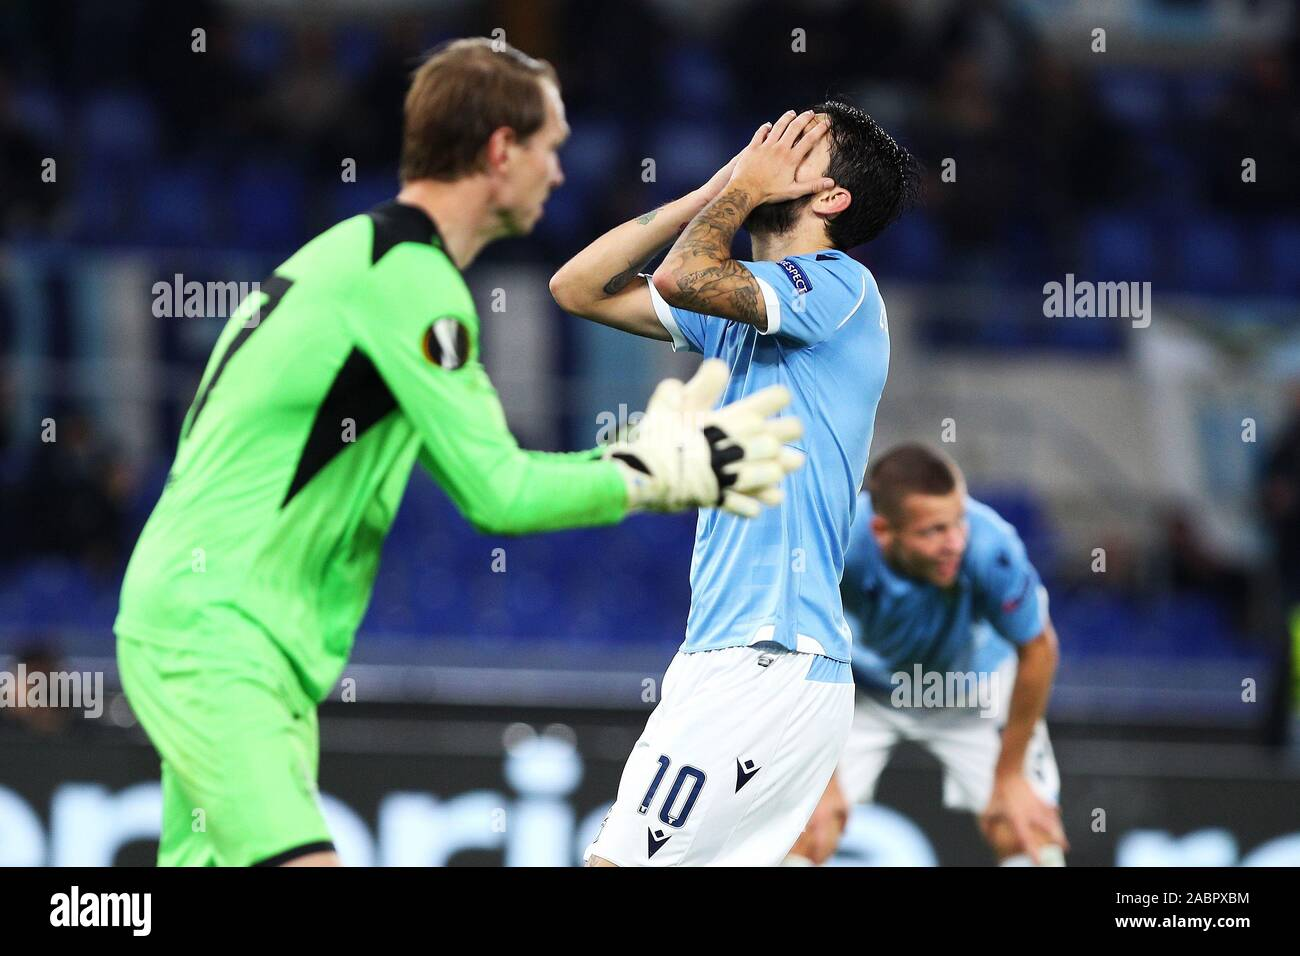 Luis Alberto of Lazio reacts during the UEFA Europa League, Group E football match between SS Lazio and CFR Cluj on November 28, 2019 at Stadio Olimpico in Rome, Italy - Photo Federico Proietti/ESPA-Images Stock Photo